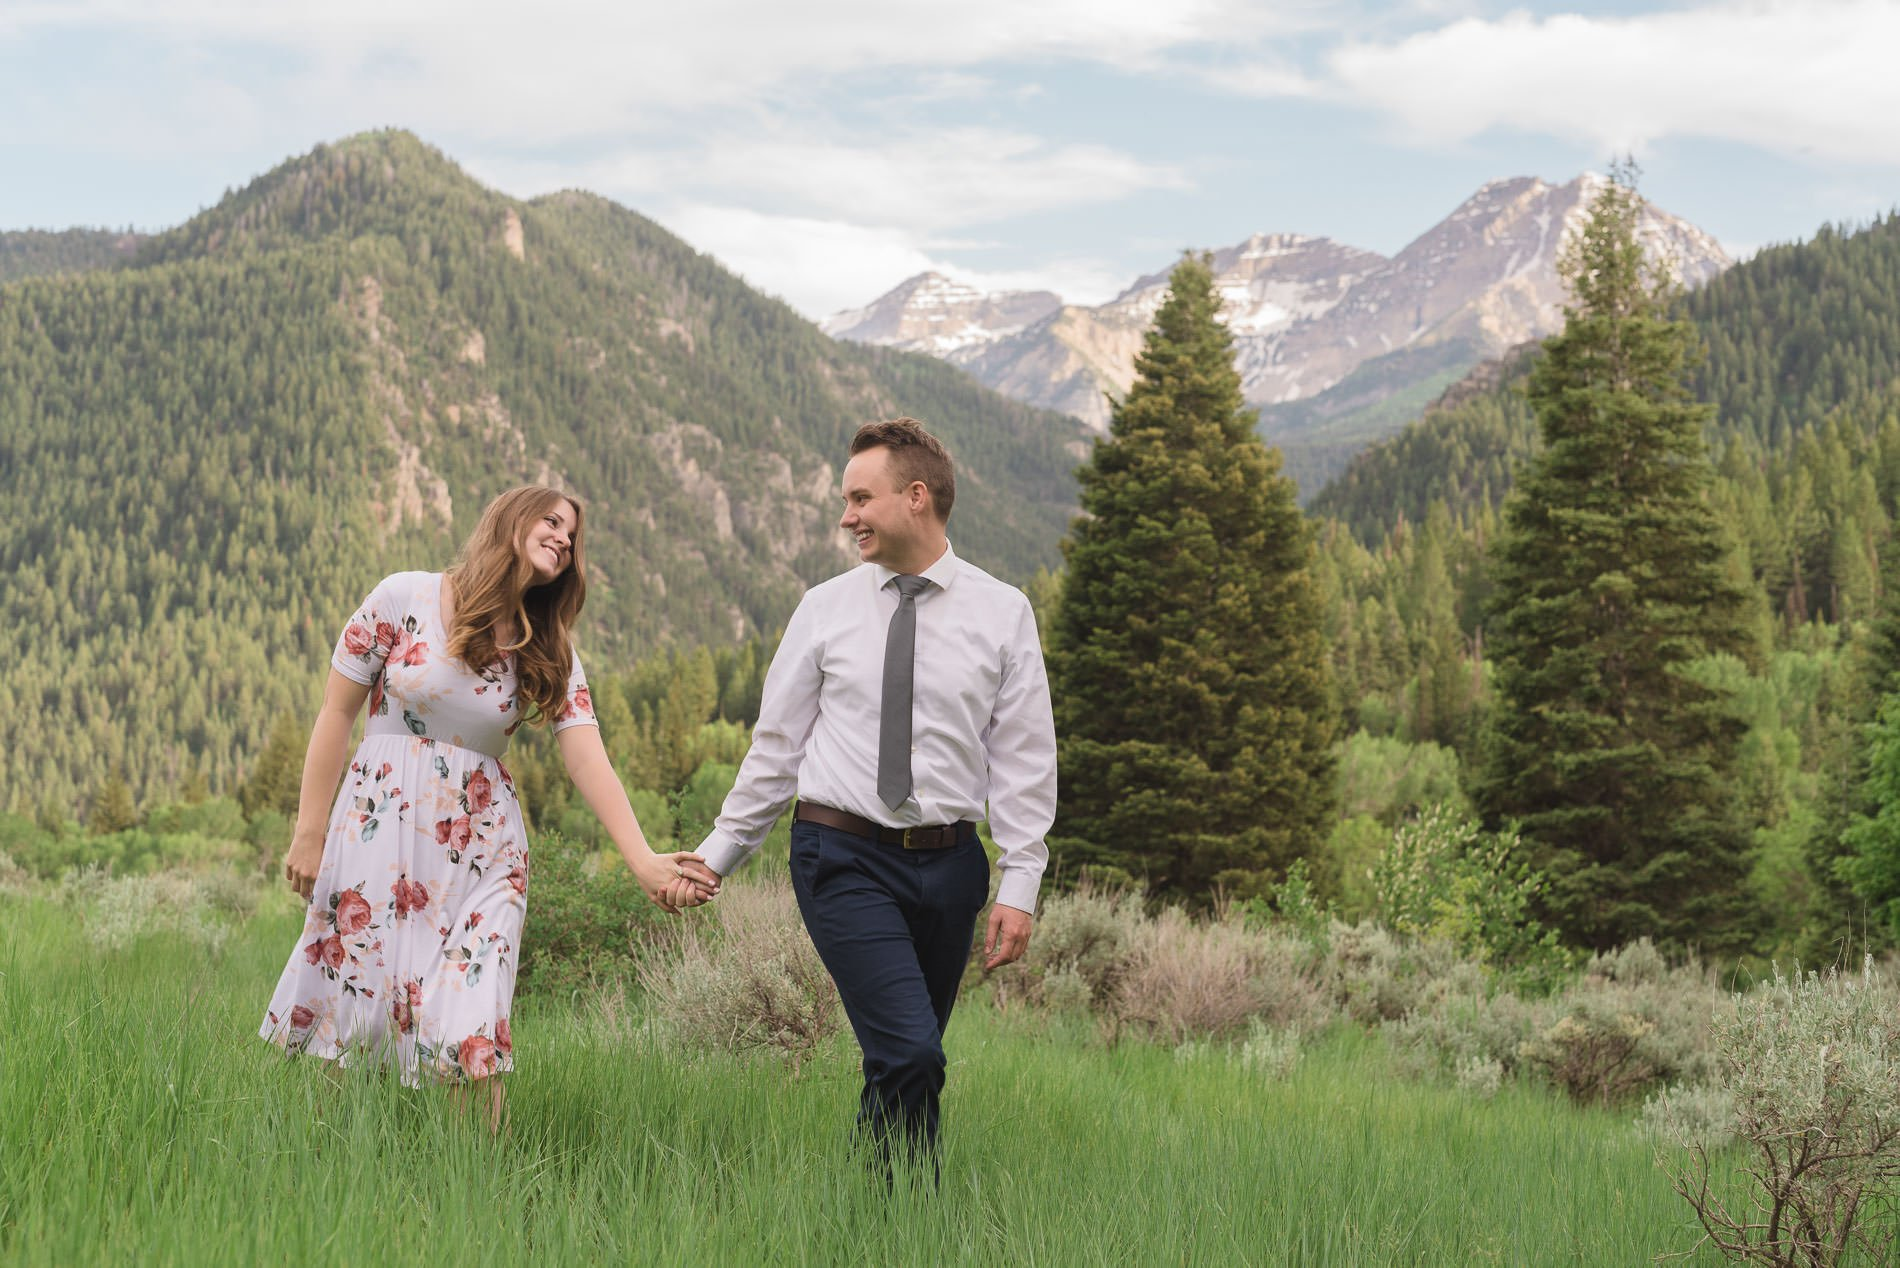 A couple walking through the brush hold hands and laughing with Mt Timpanogos and pines in the background for engagement photography at Tibble Fork.